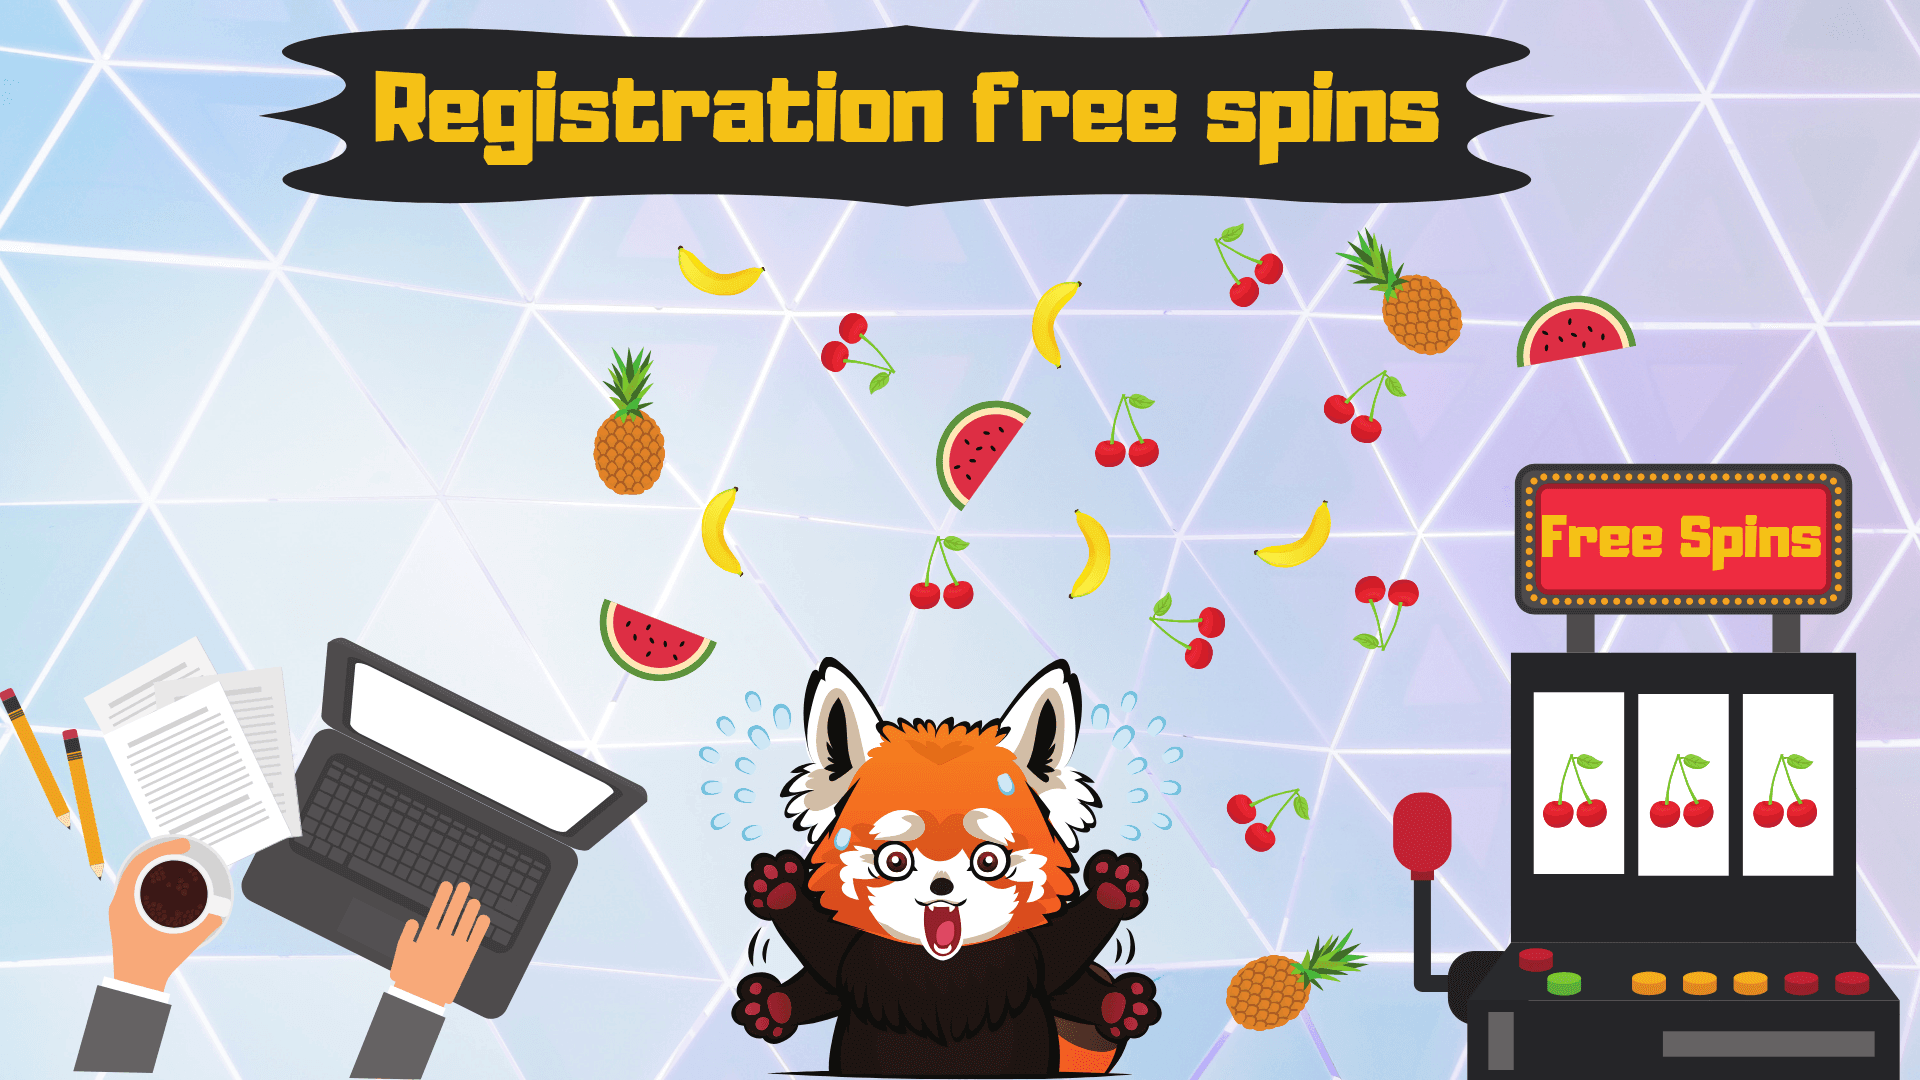 Registration Free Spins